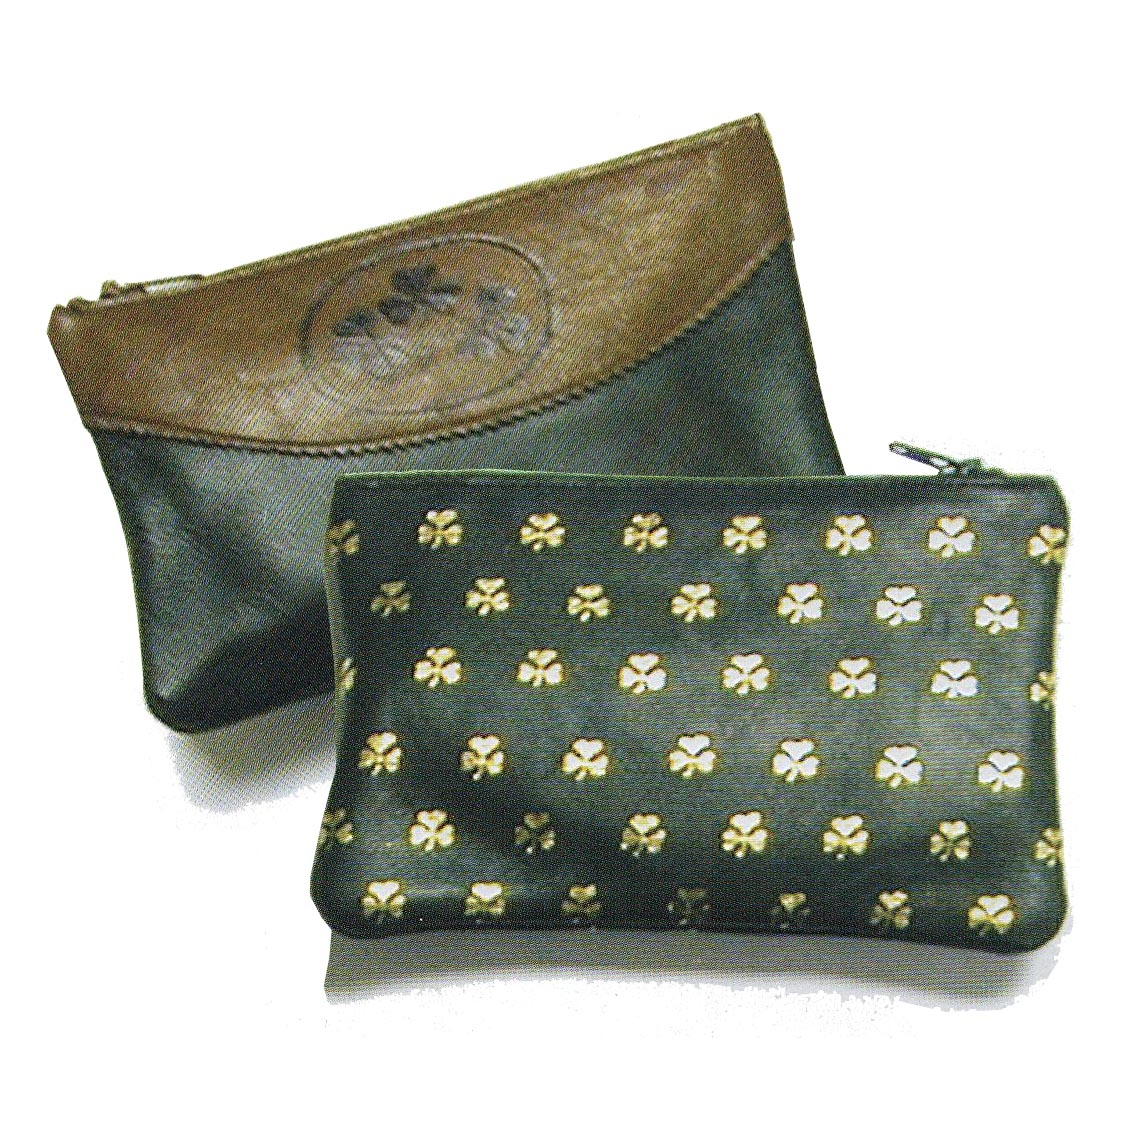 Top zip Shamrock purse green & Two Tone